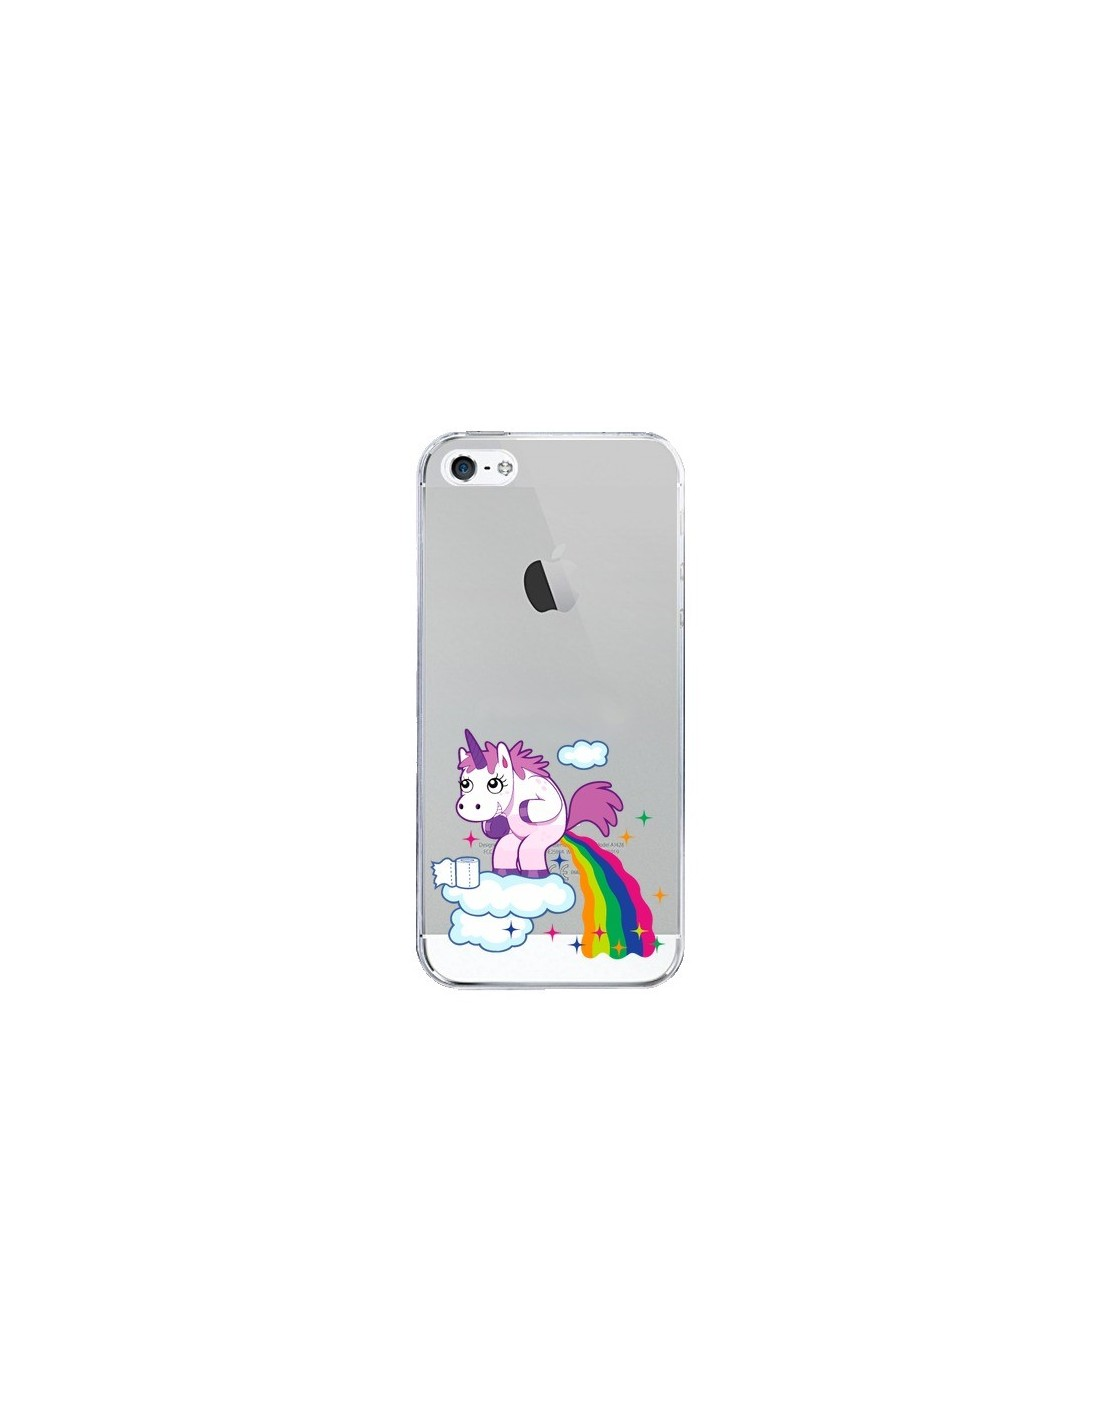 coque licorne caca arc en ciel transparente pour iphone 5 5s et se nico. Black Bedroom Furniture Sets. Home Design Ideas